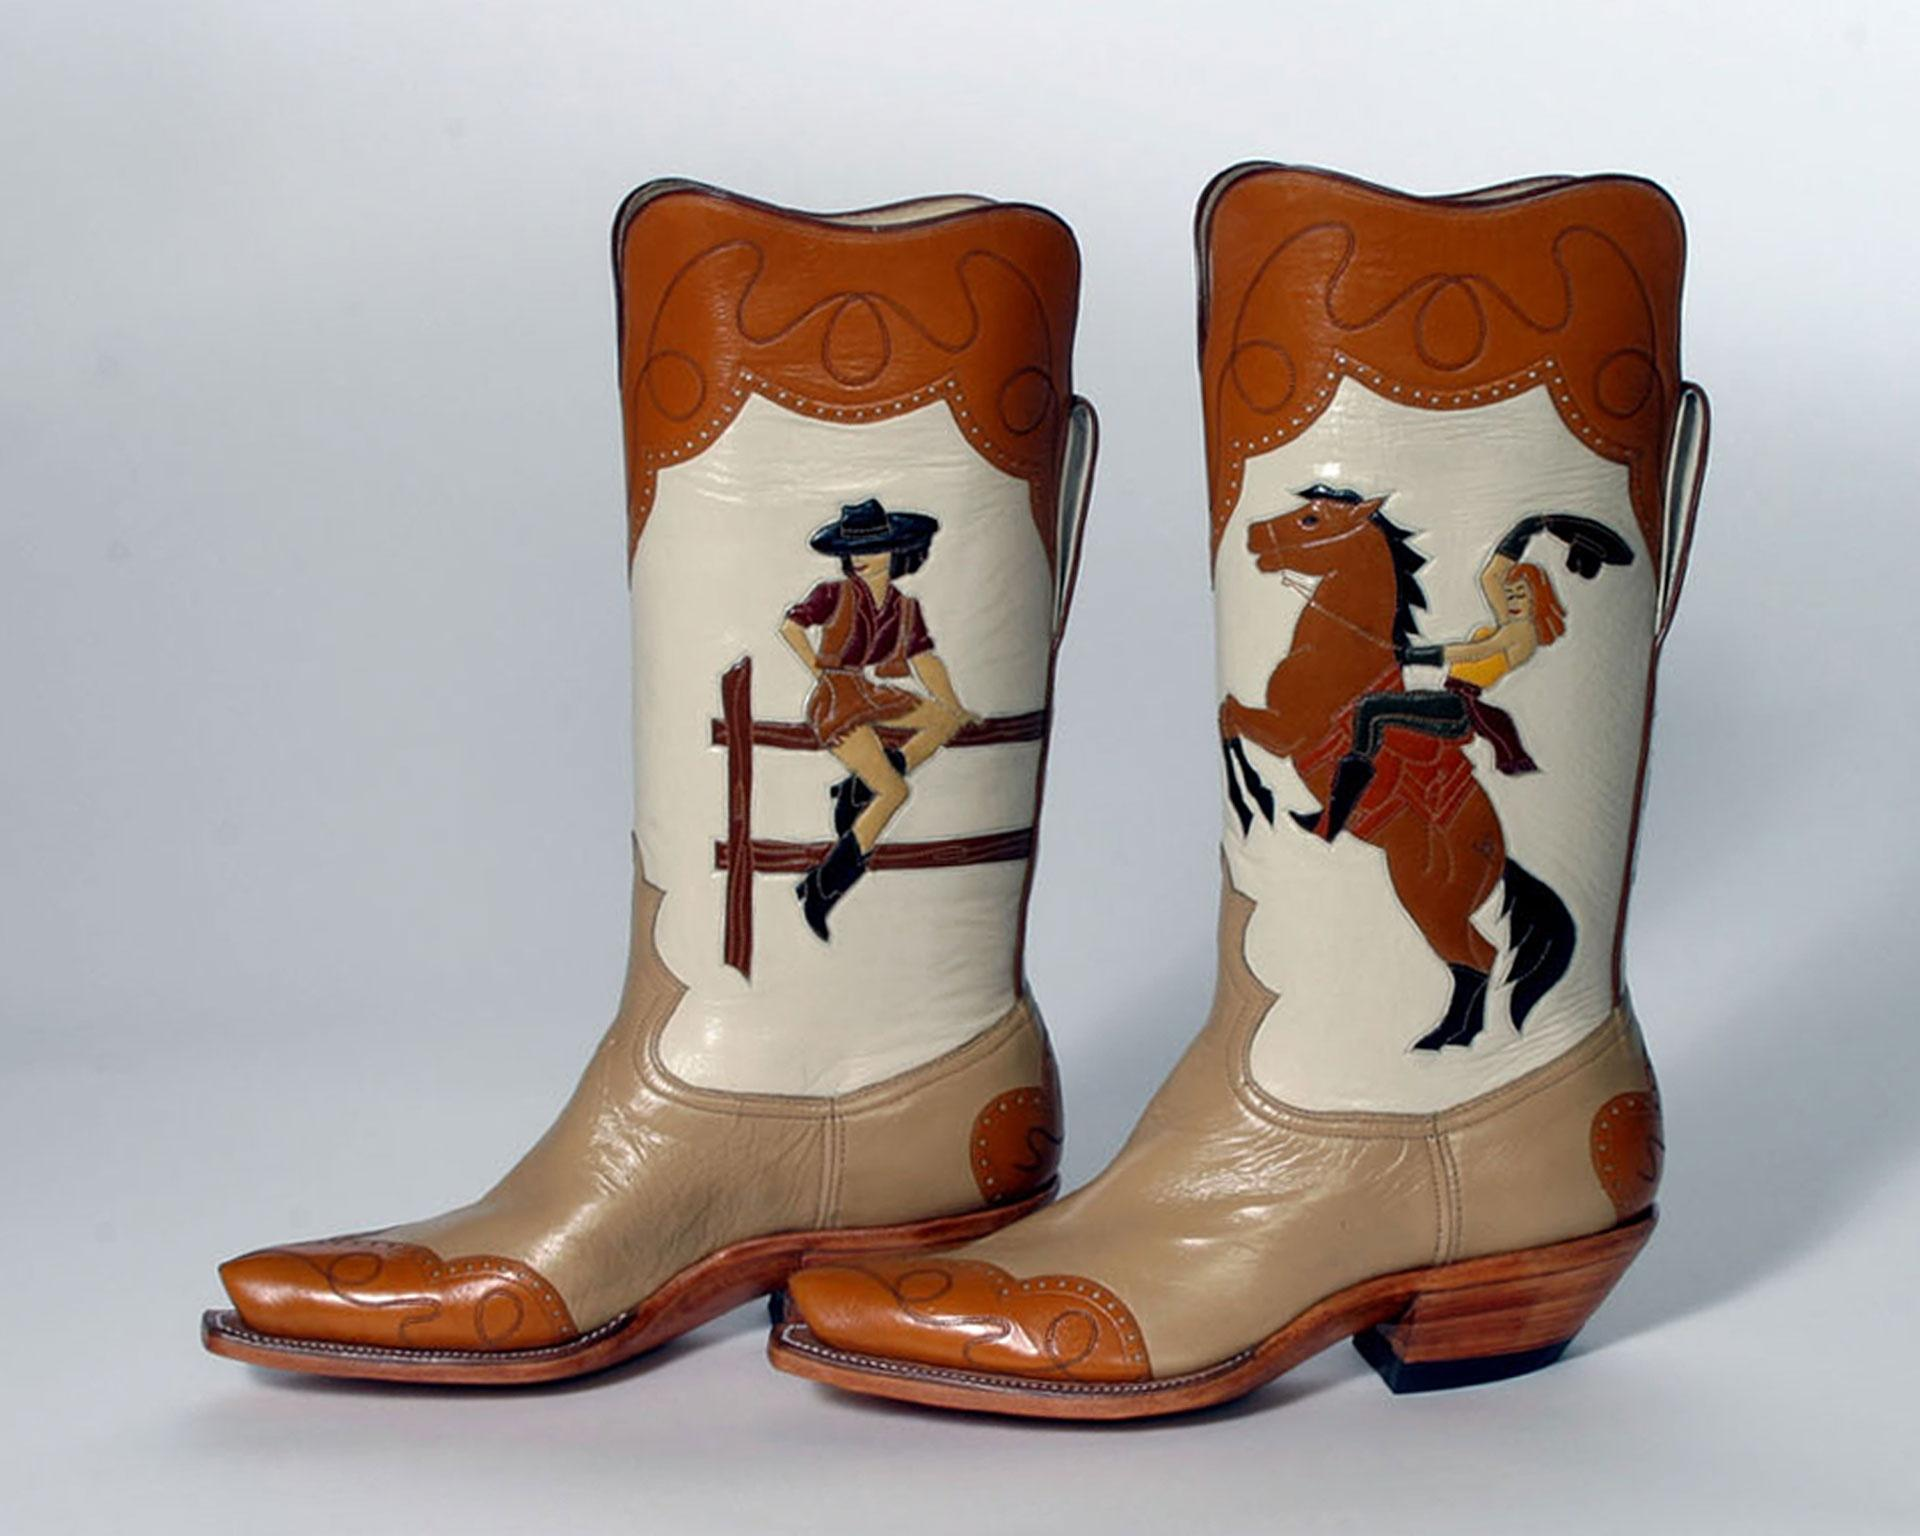 LISA SORRELL I WANT TO BE A COWBOY'S SWEETHEART BOOTS